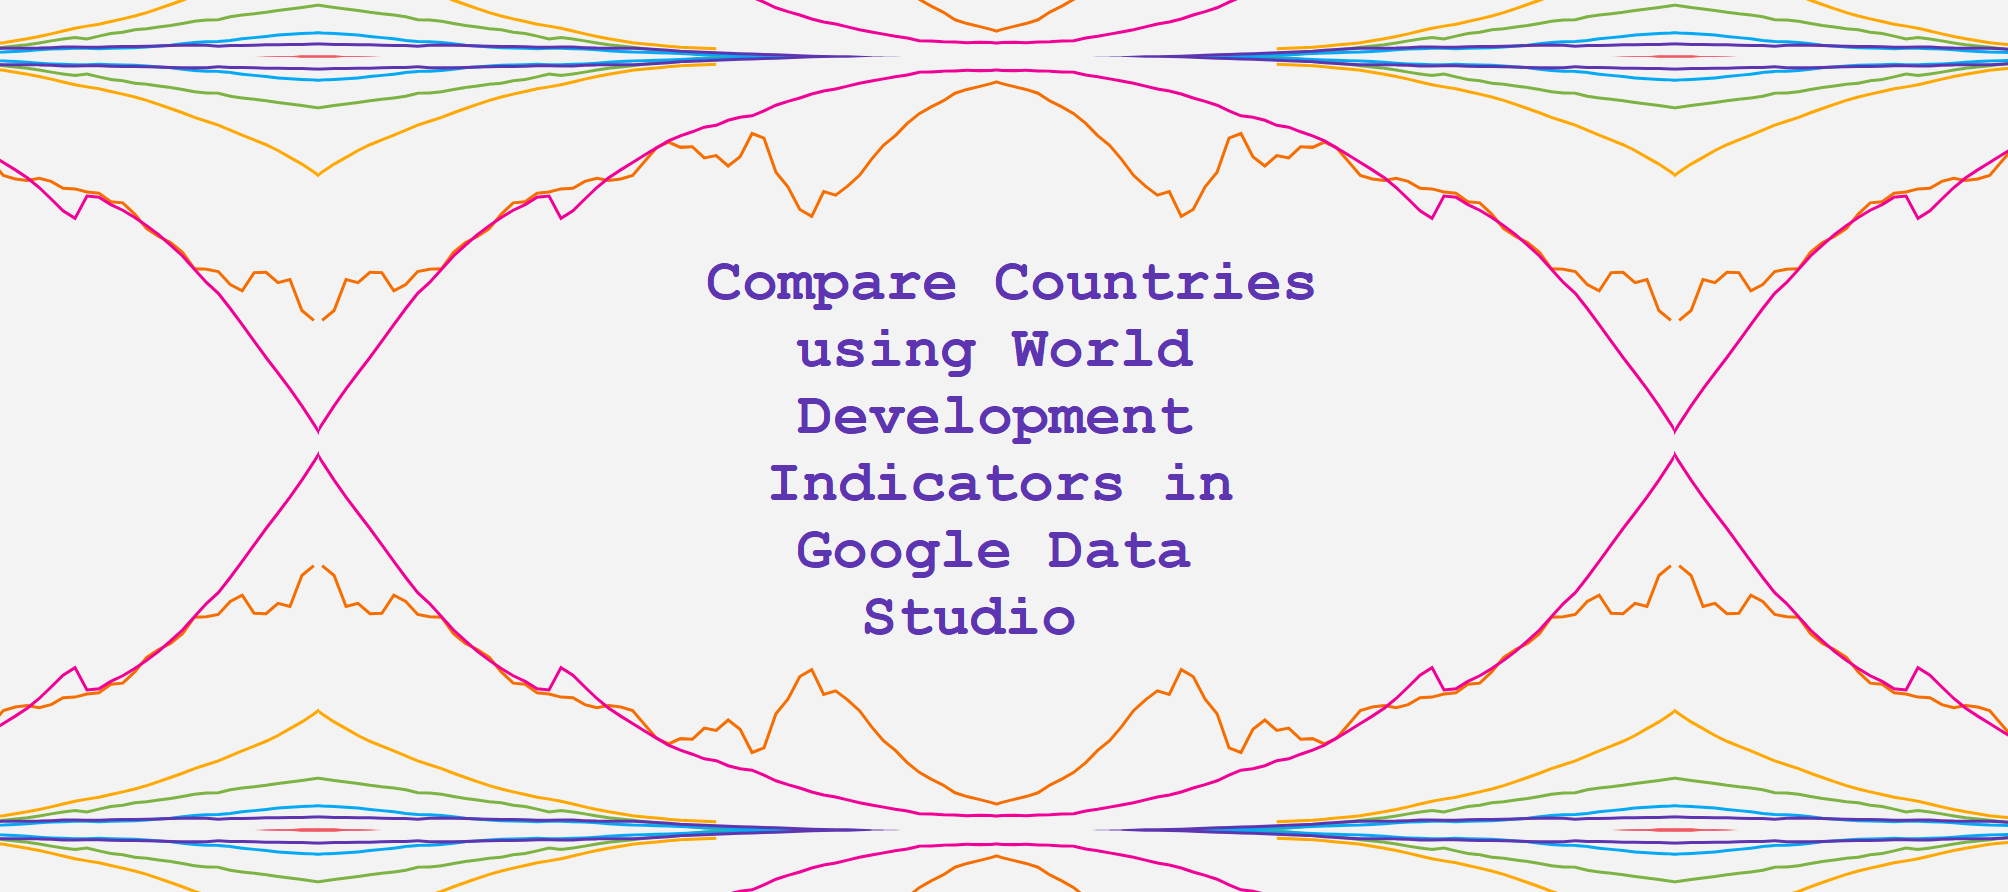 Compare Countries using World Development Indicators in Google Data Studio